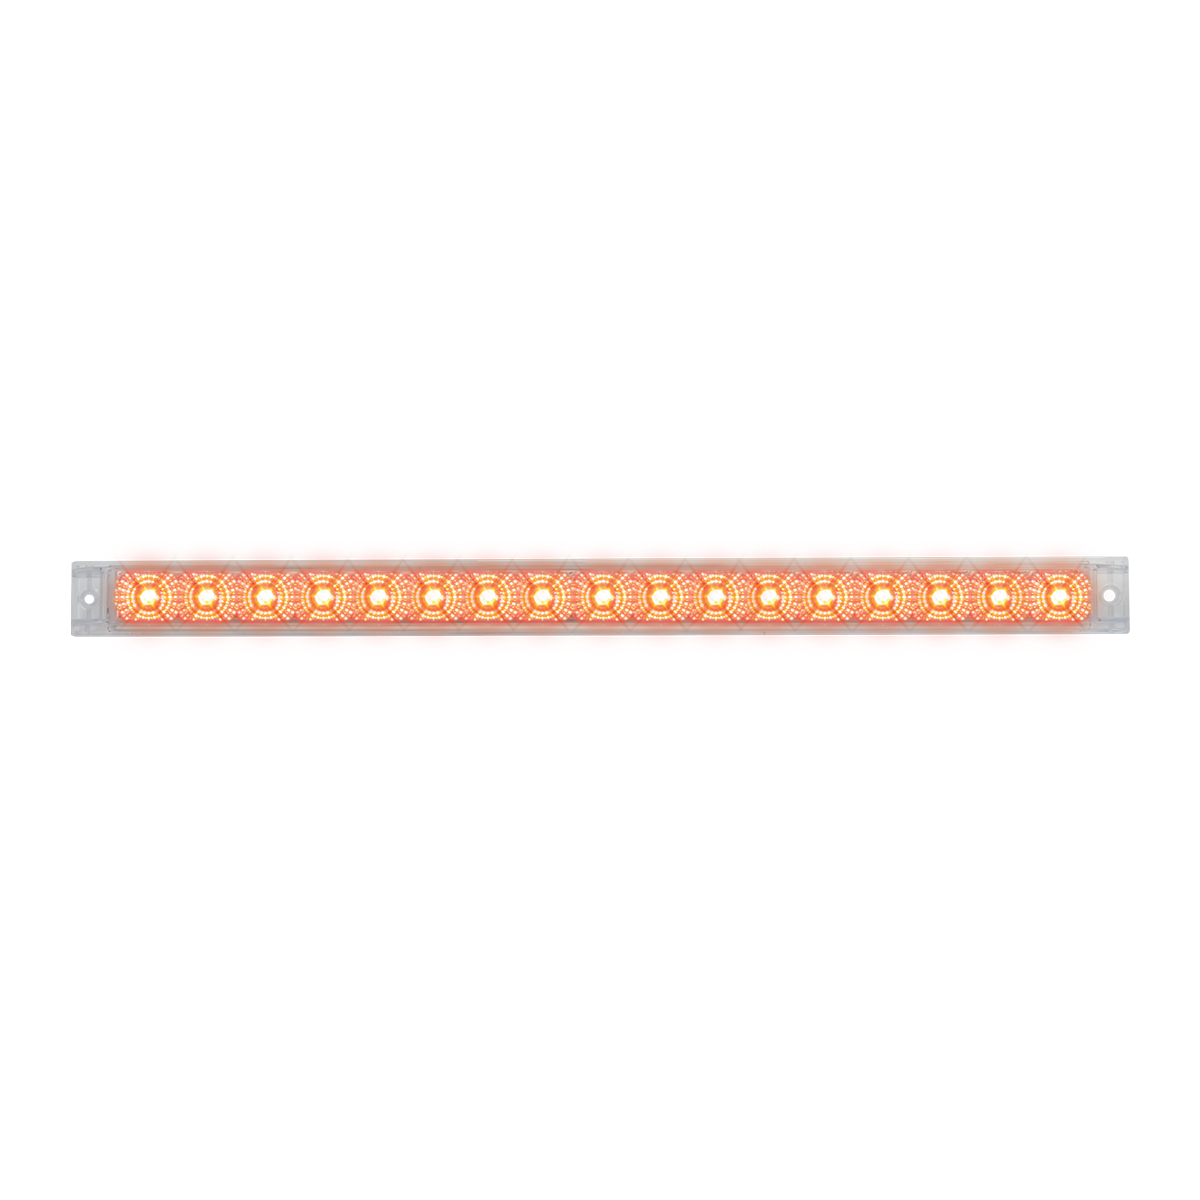 "76983 20"" Spyder LED Light Bar in Clear Lens"